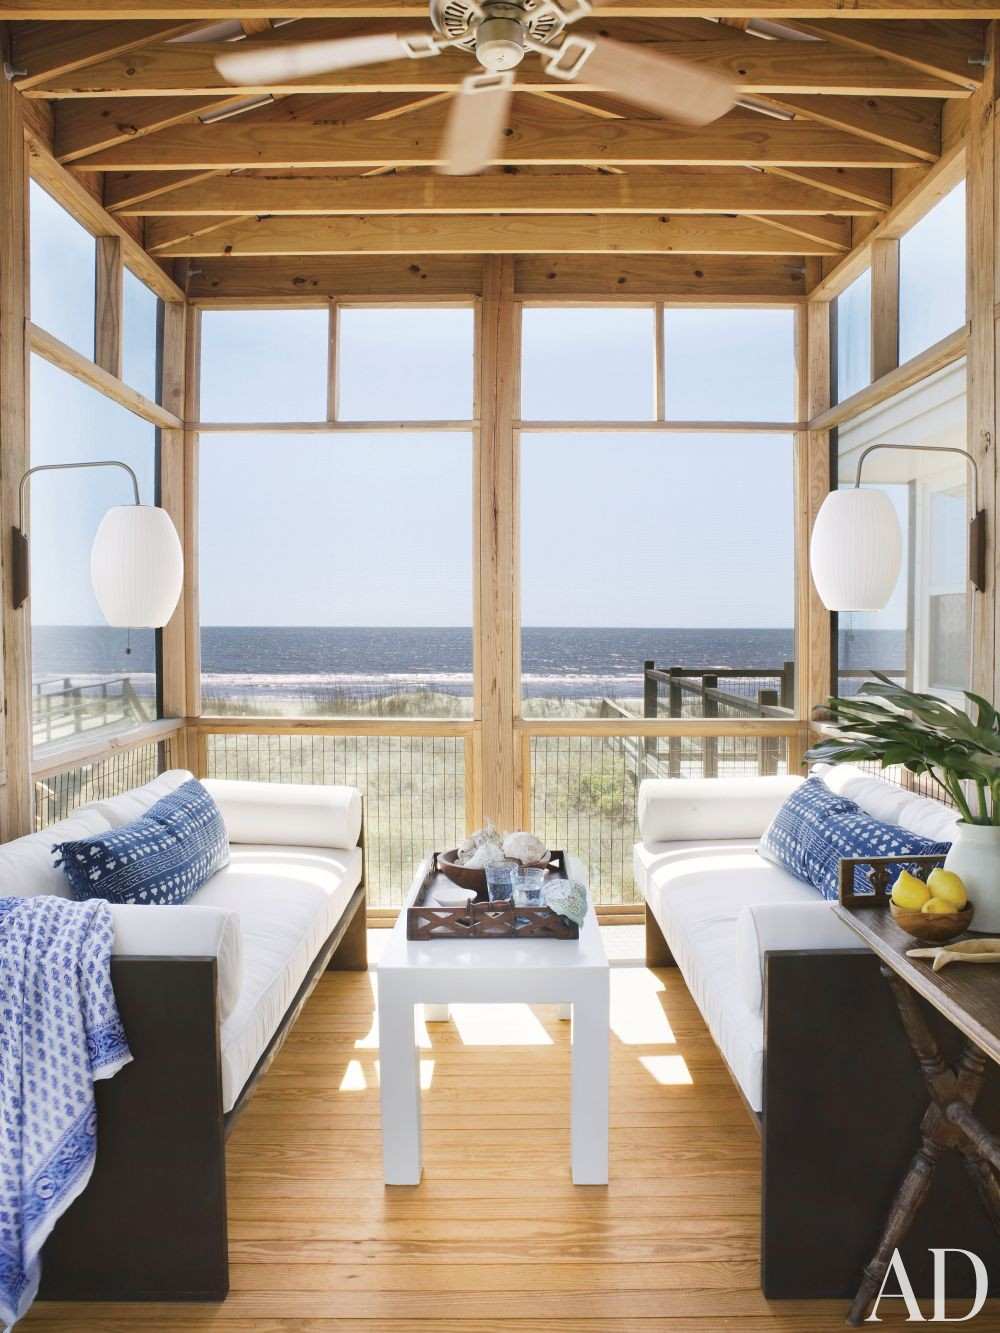 Beach Outdoor Space by Amelia T. Handegan and Stumphouse Architecture + Design and Glenn Keyes Architects in Folly Beach, South Carolina